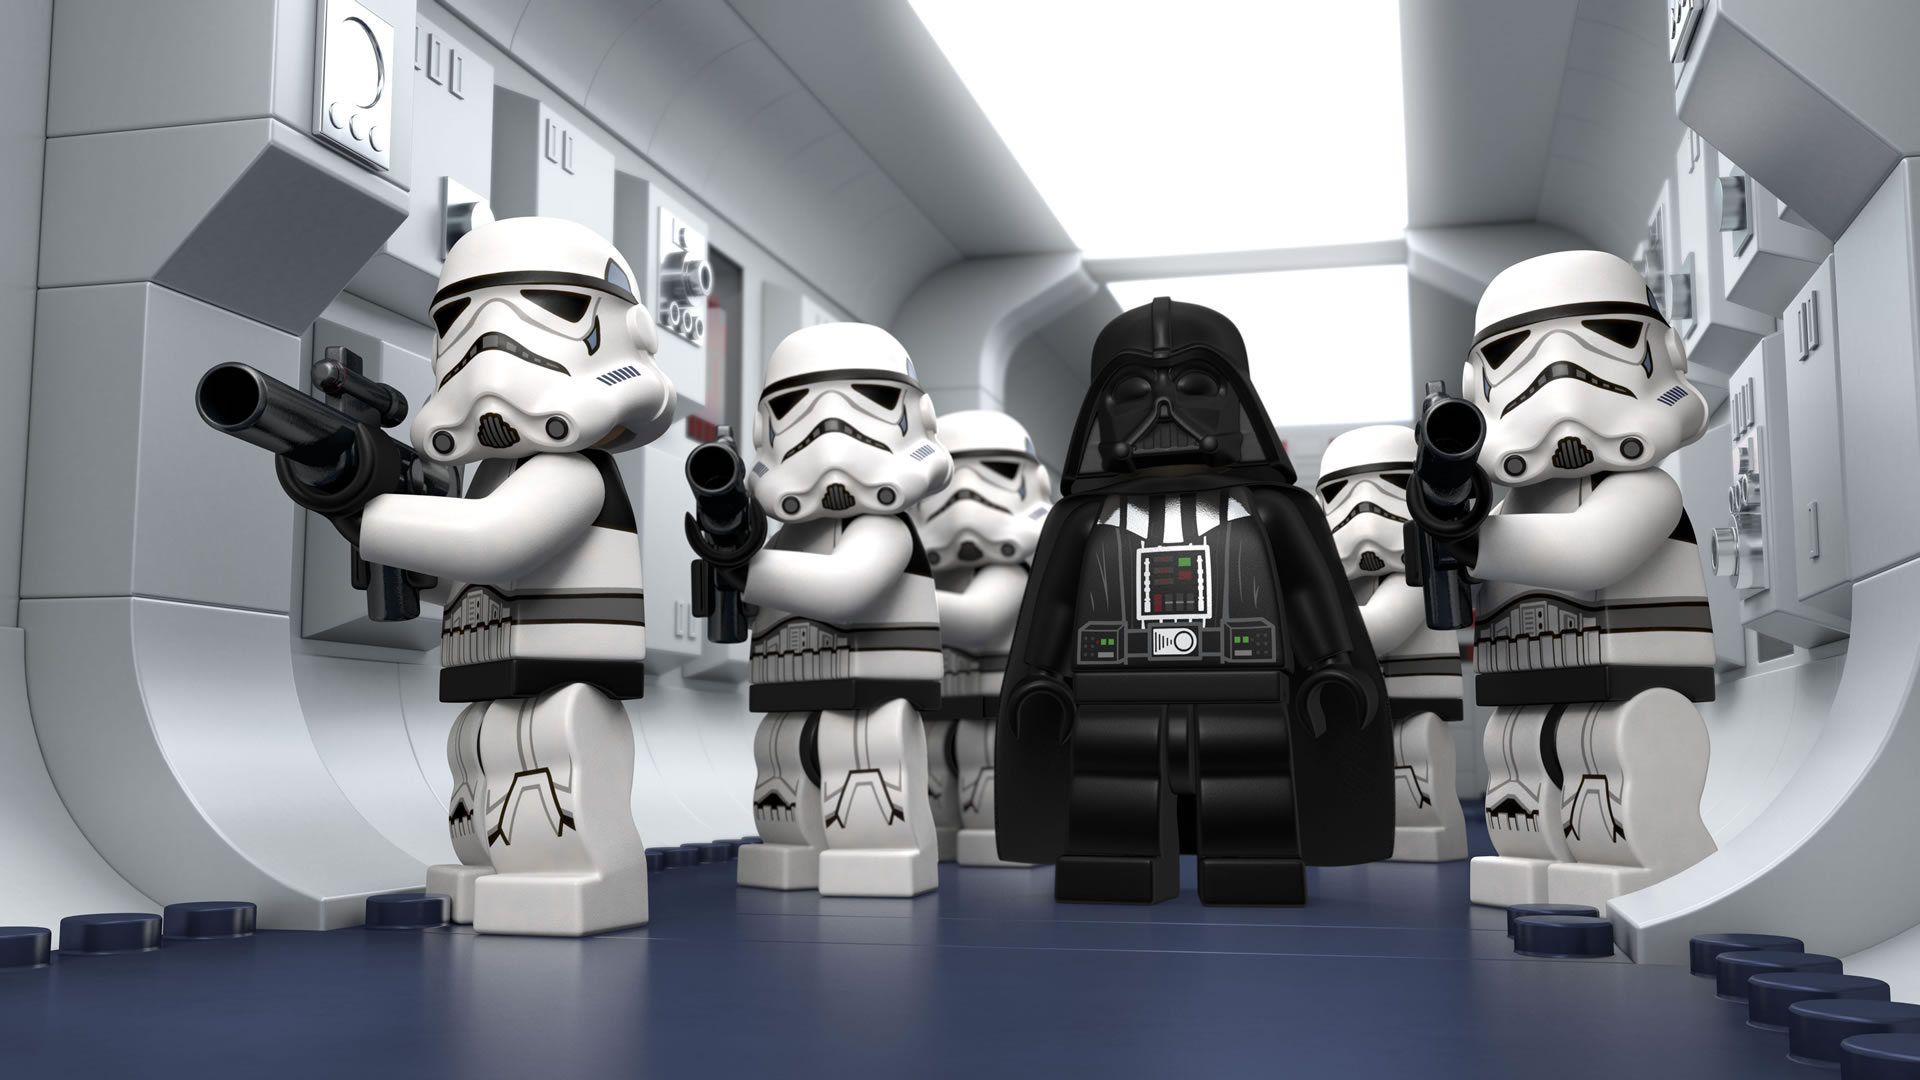 download wallpaper: LEGO Star Wars wallpaper